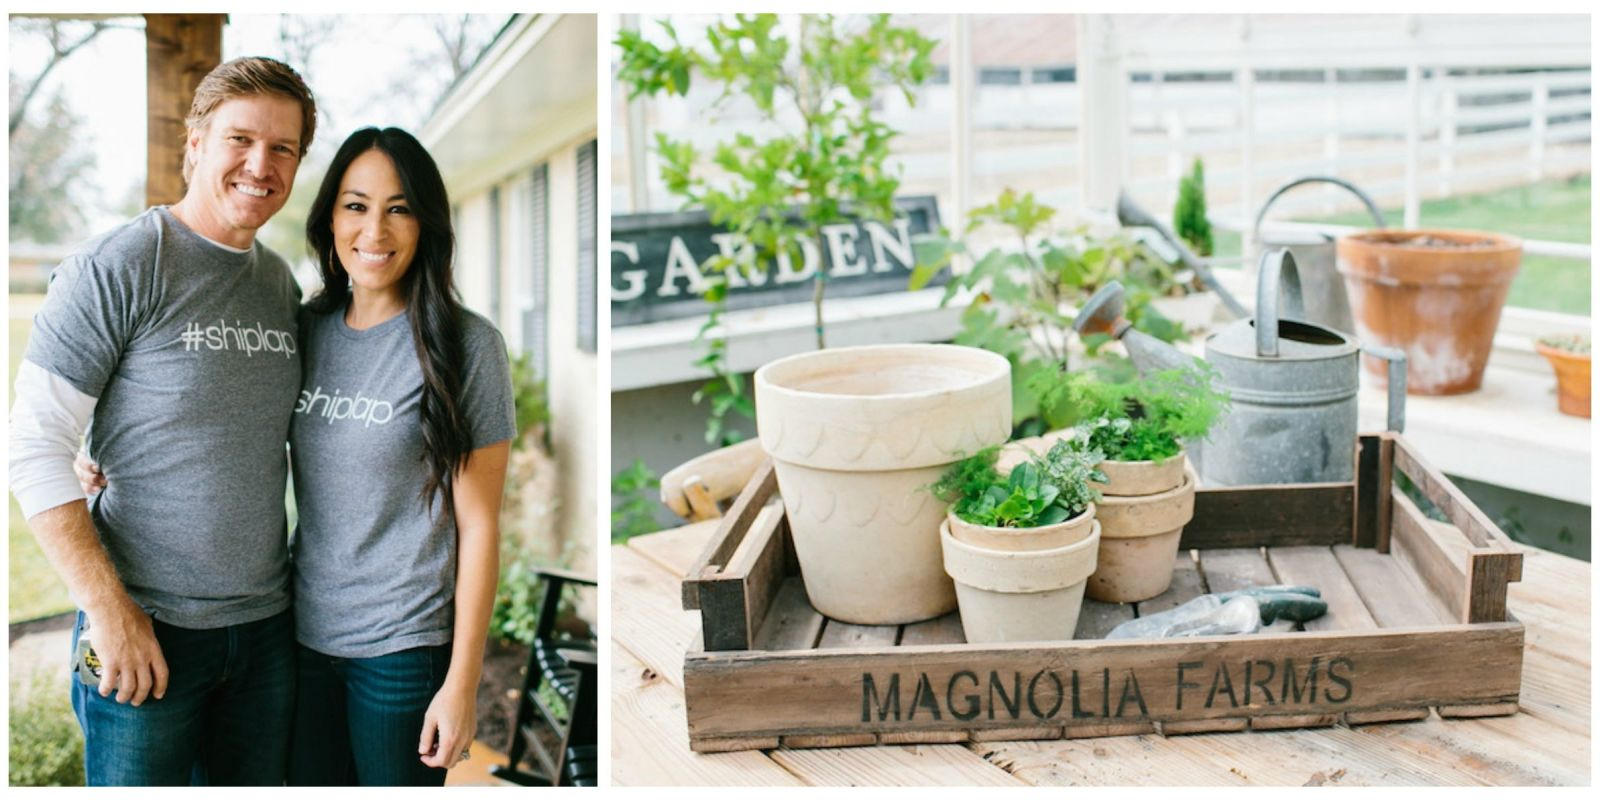 Waco Texas Real Estate Chip And Joanna Gaines Joanna Gaines Store Holiday Gifts From Magnolia Market